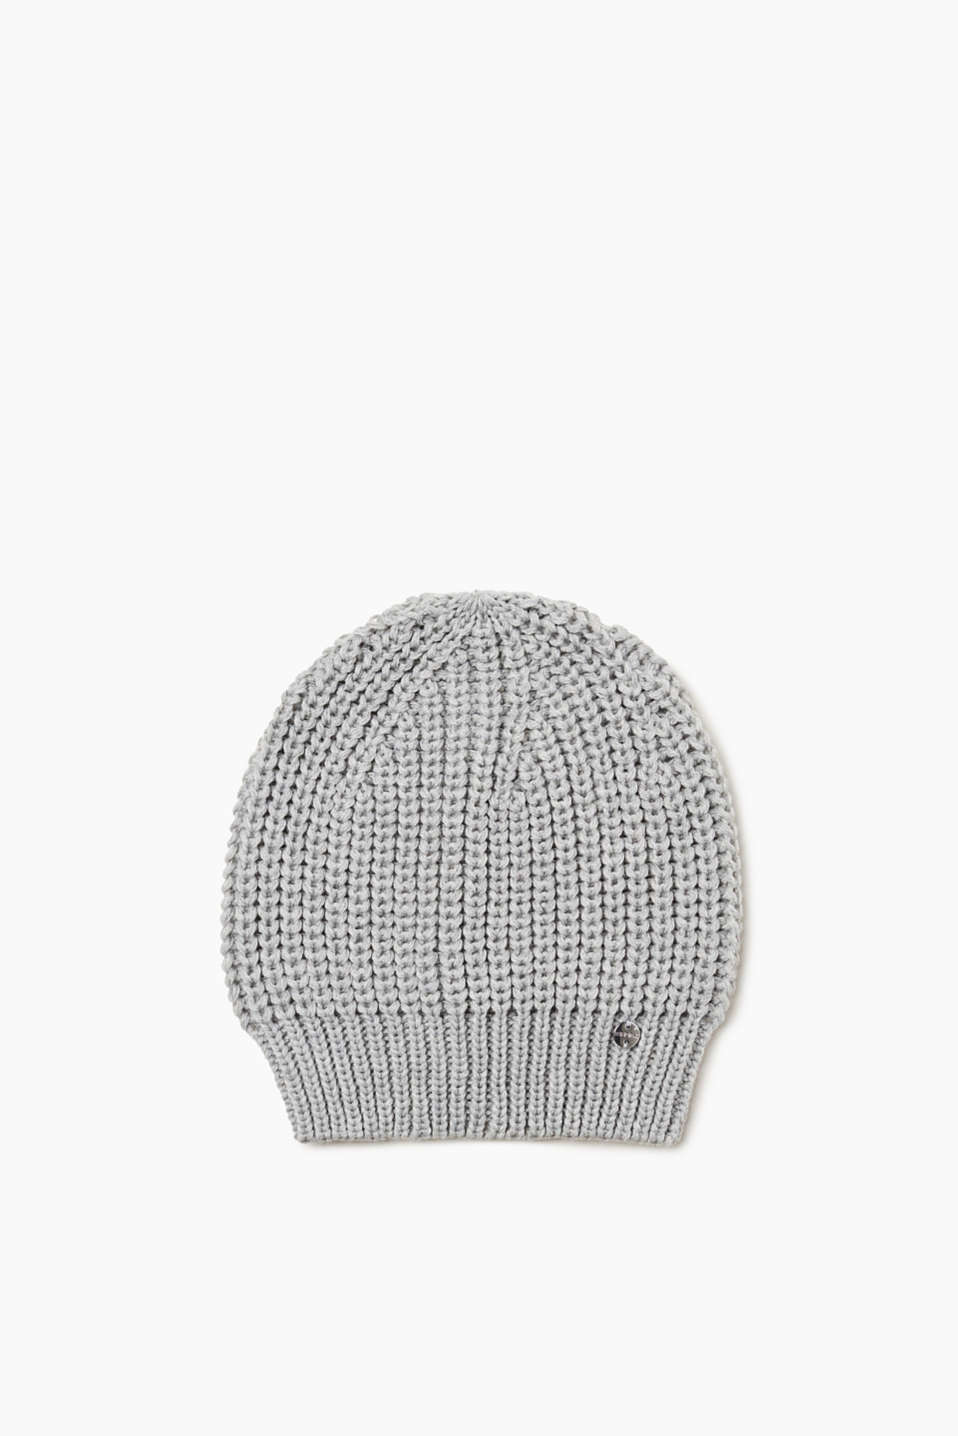 A trendy accessory that is very warm! This beanie is very eye-catching thanks to the chunky knit fabric and the ribbed cuff.